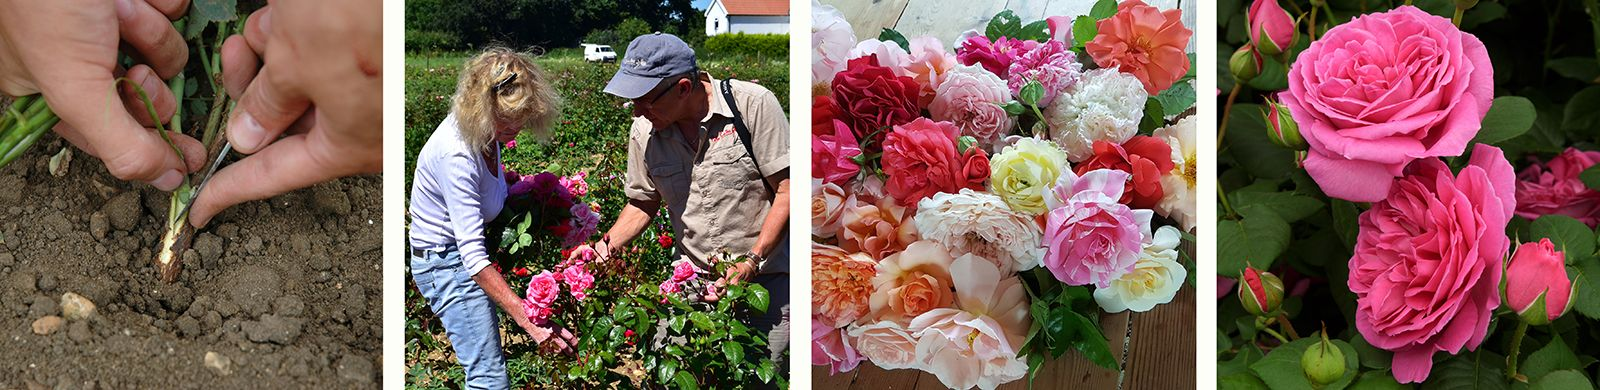 How are new roses bred? Fig.13, Fig.14, Fig.15 & Fig.16